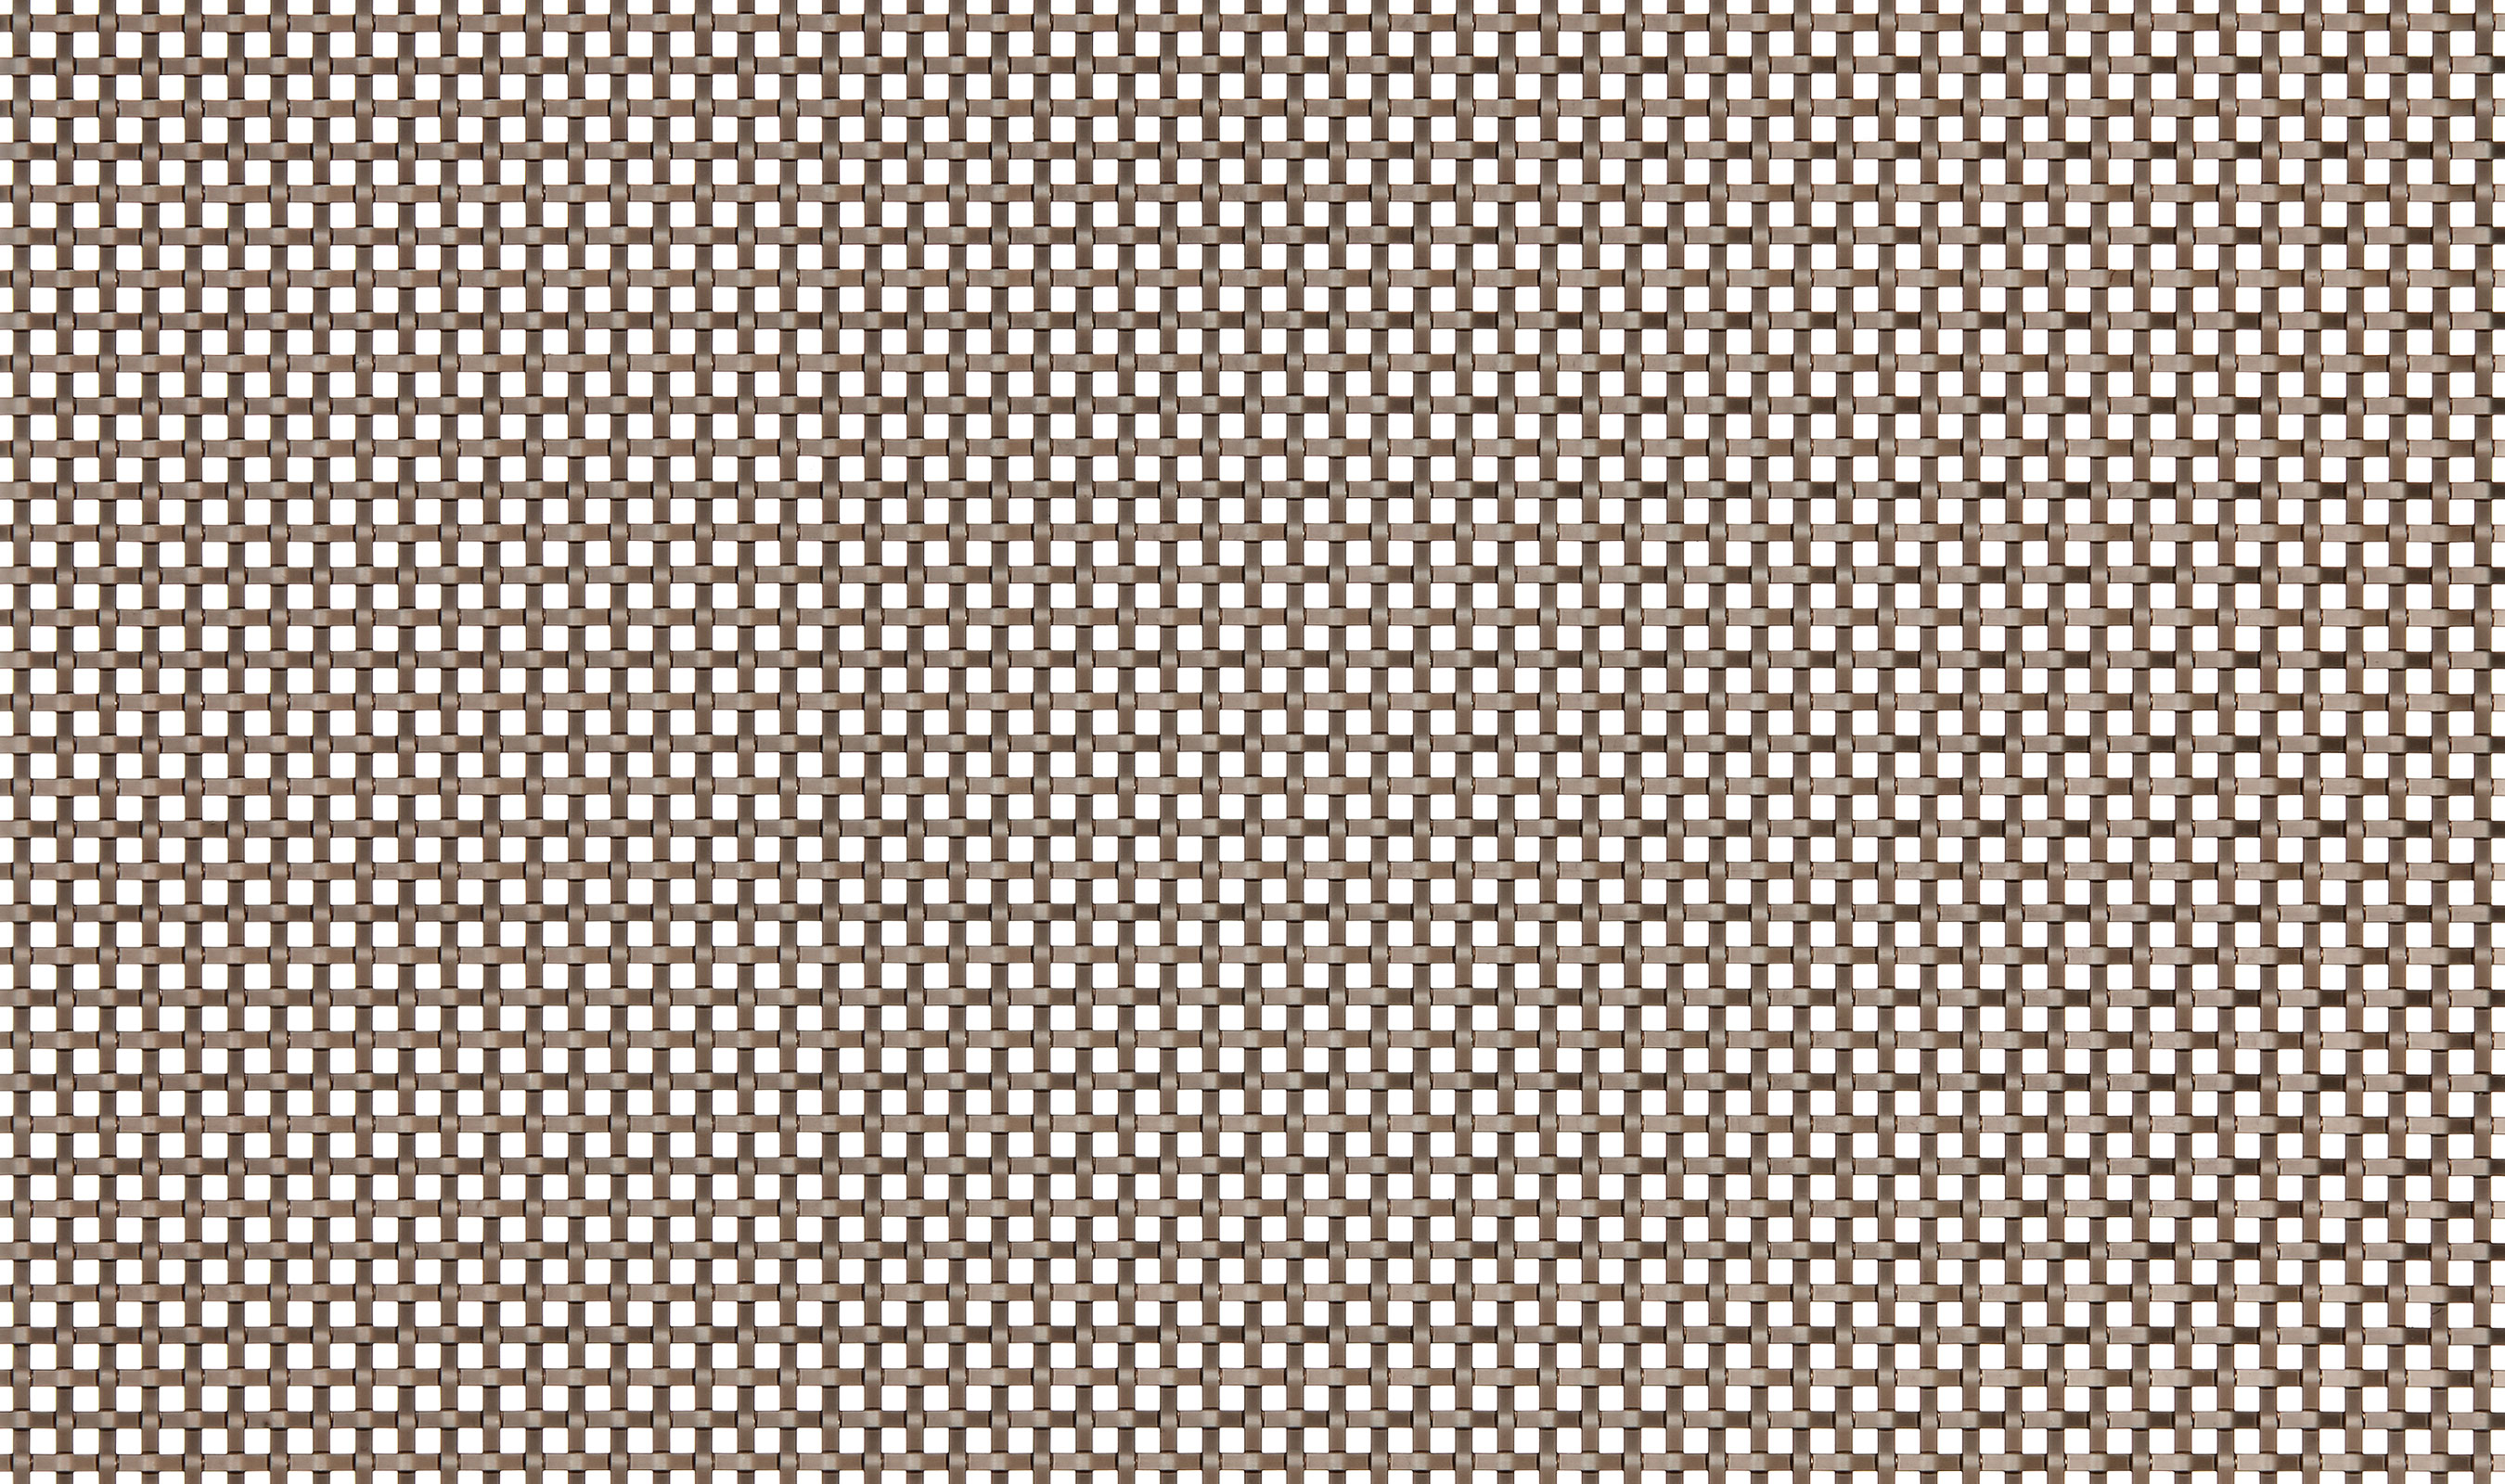 S-32 Antique Nickel plated wire mesh pattern